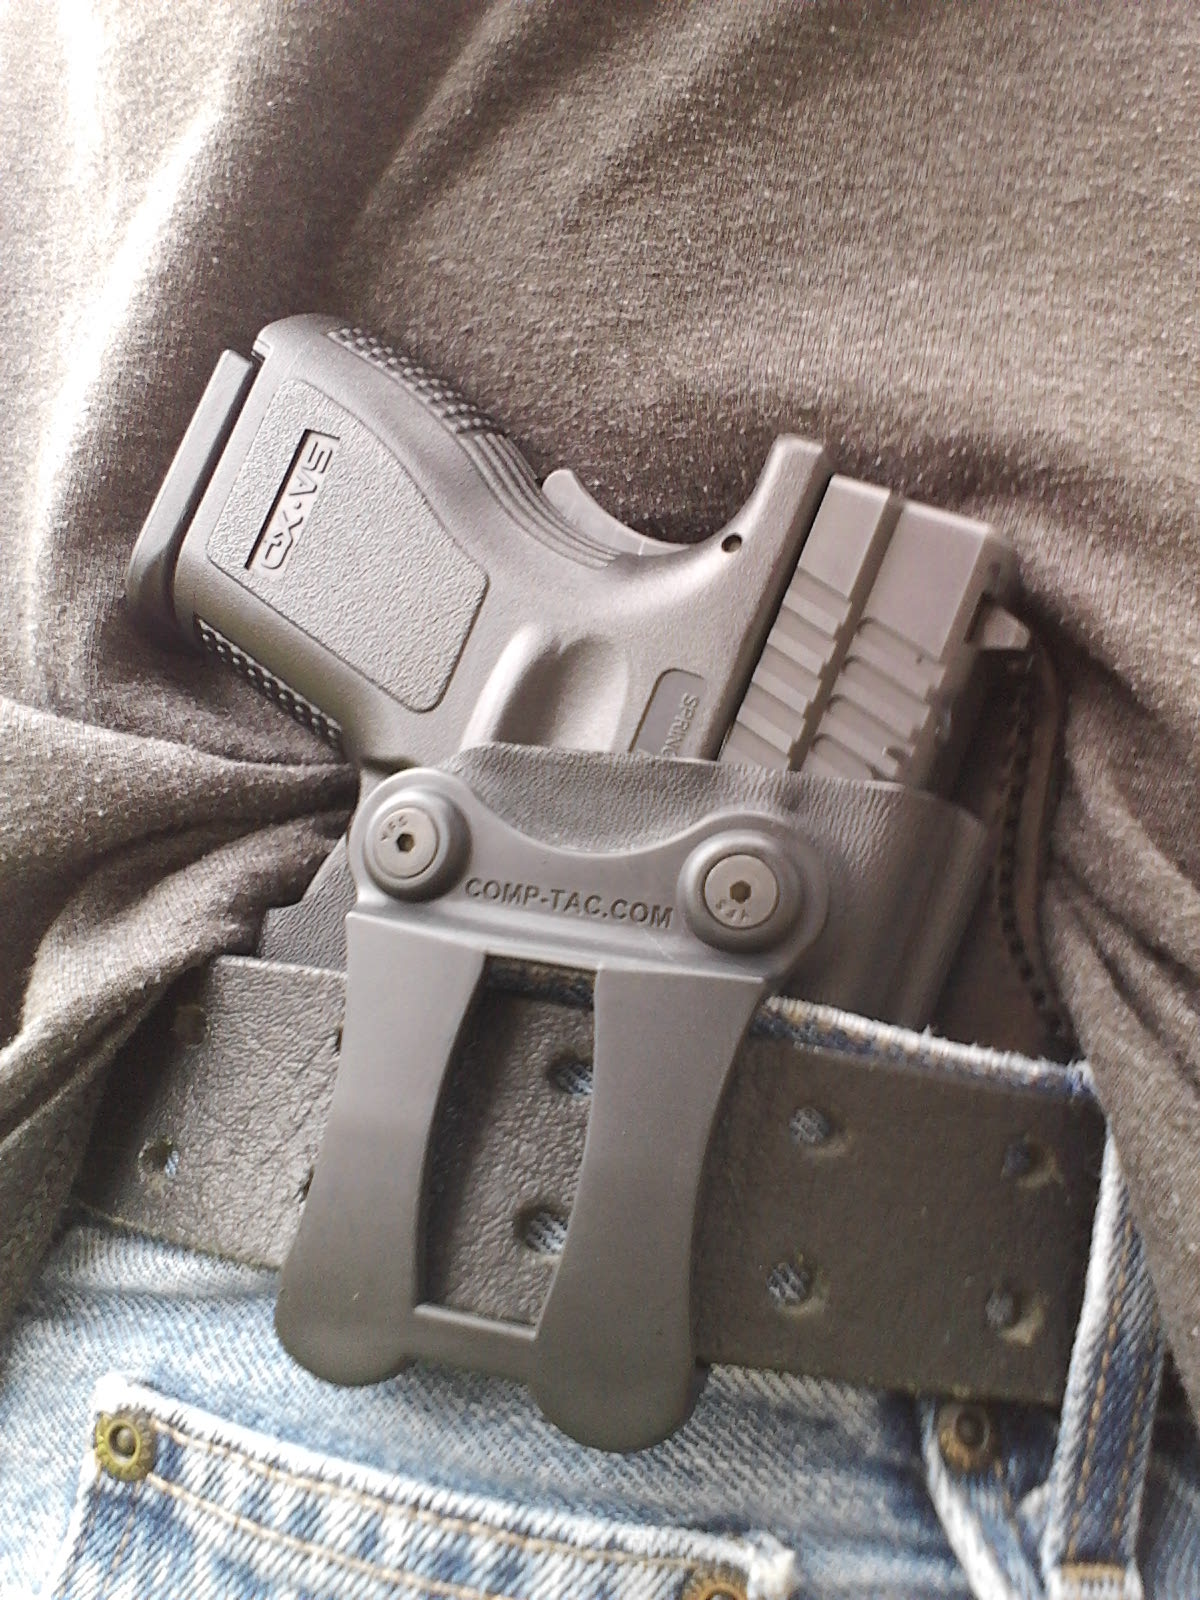 Holster reviews from my blog: Comp-Tac Minotaur &  Infidel Ultra, Multi Holsters TC-20130323_134838.jpg